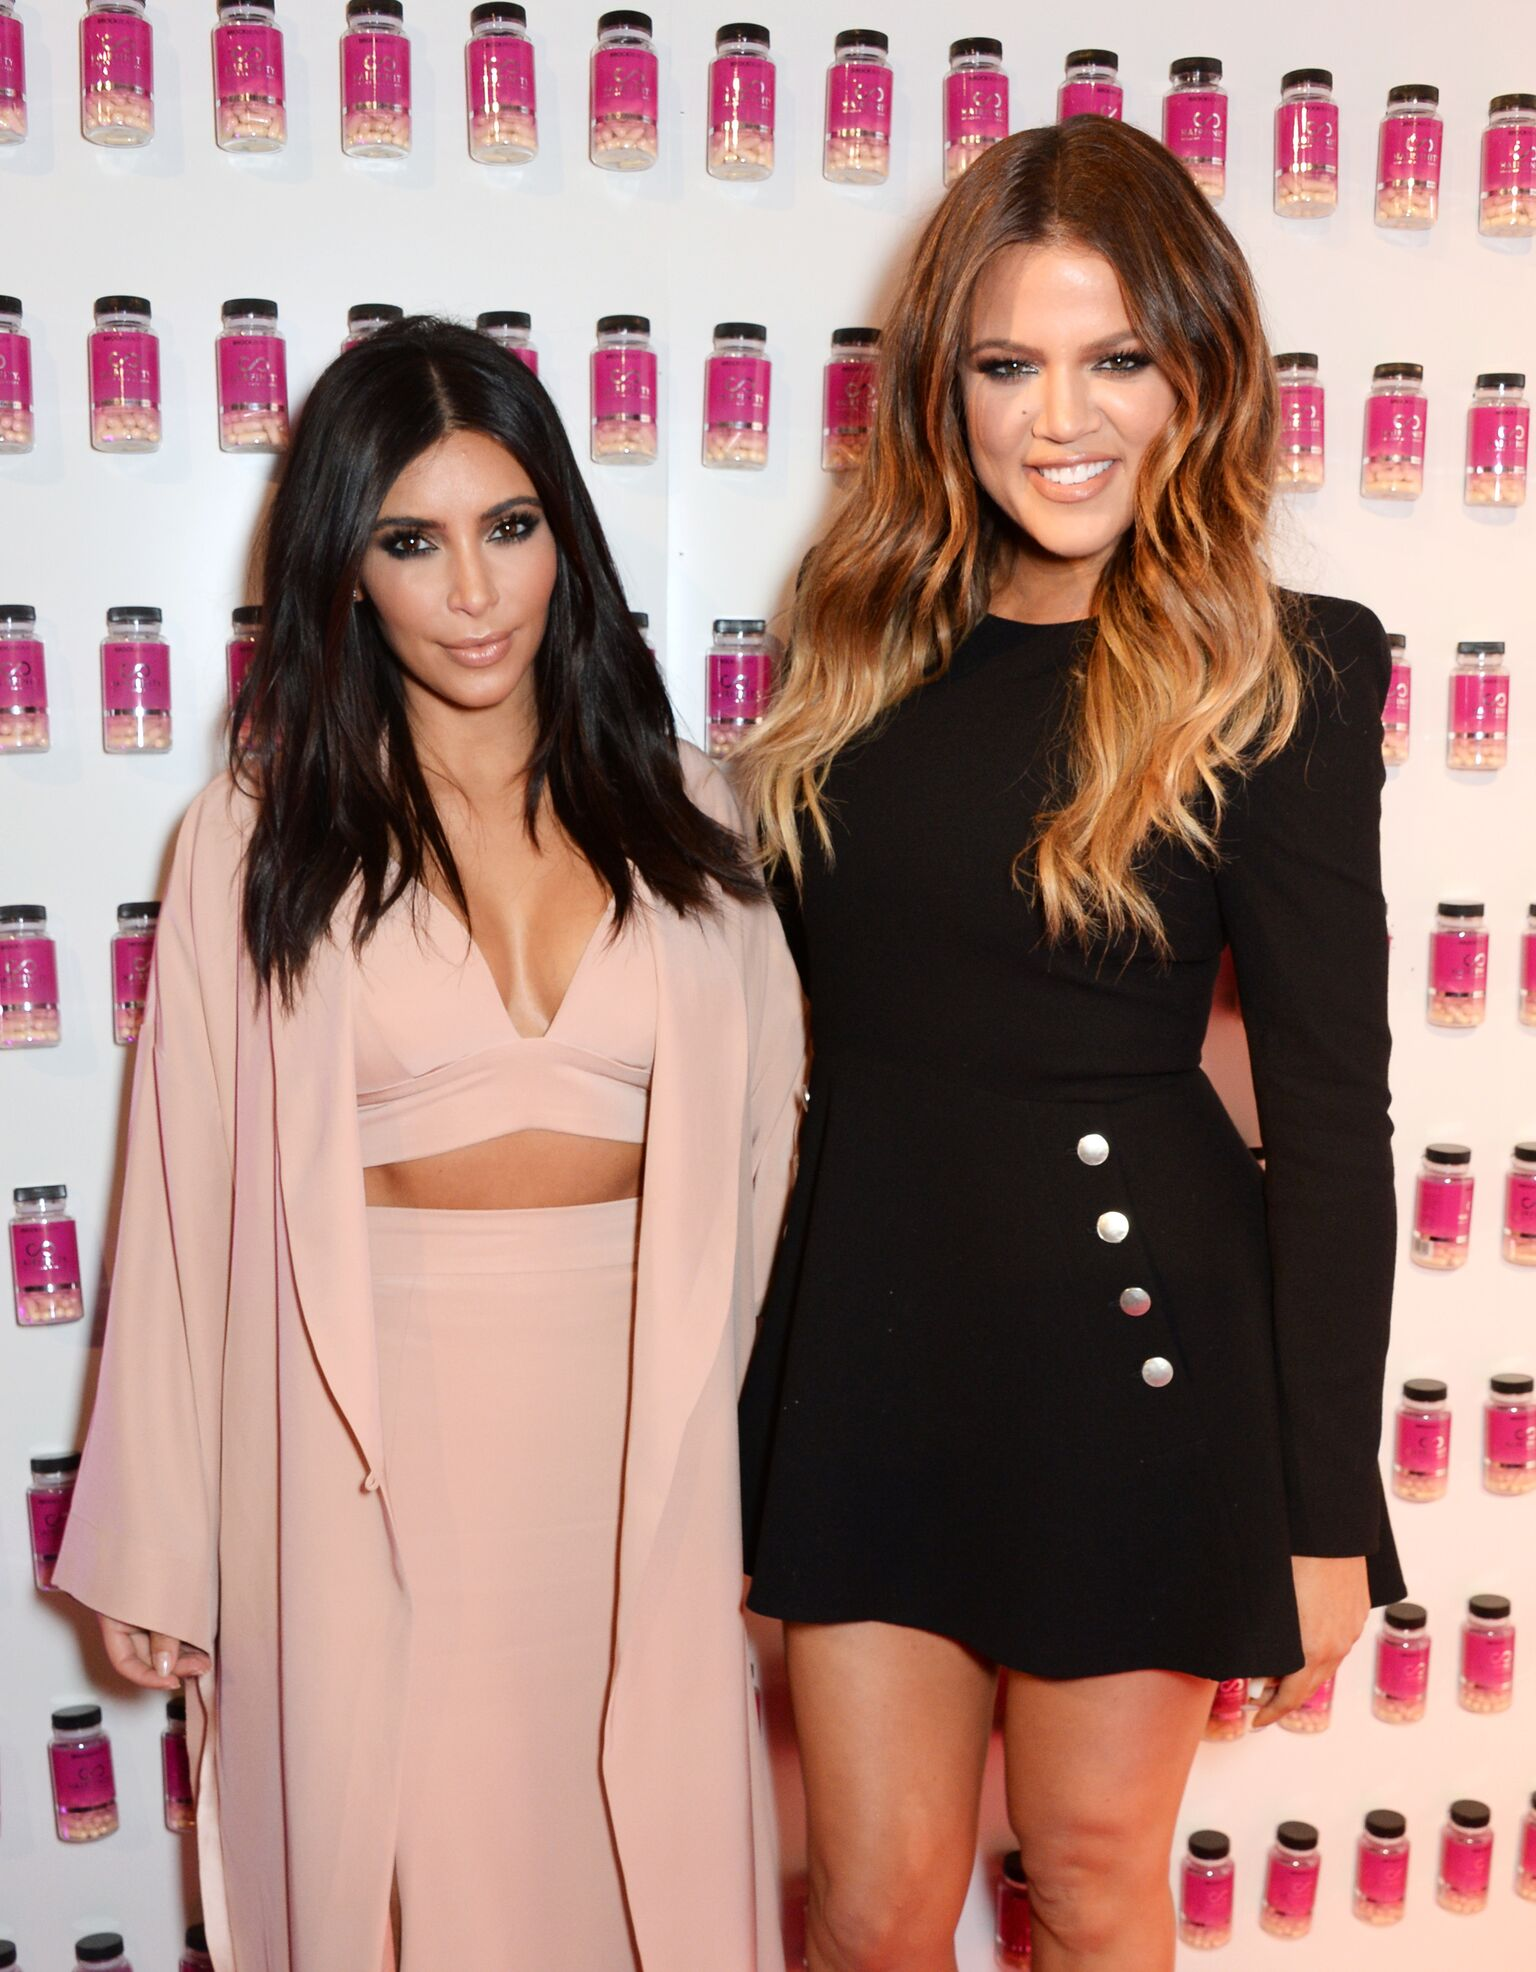 Kim Kardashian West (L) and Khloe Kardashian attend the Hairfinity UK Launch as special guests at Il Bottaccio  | Getty Images